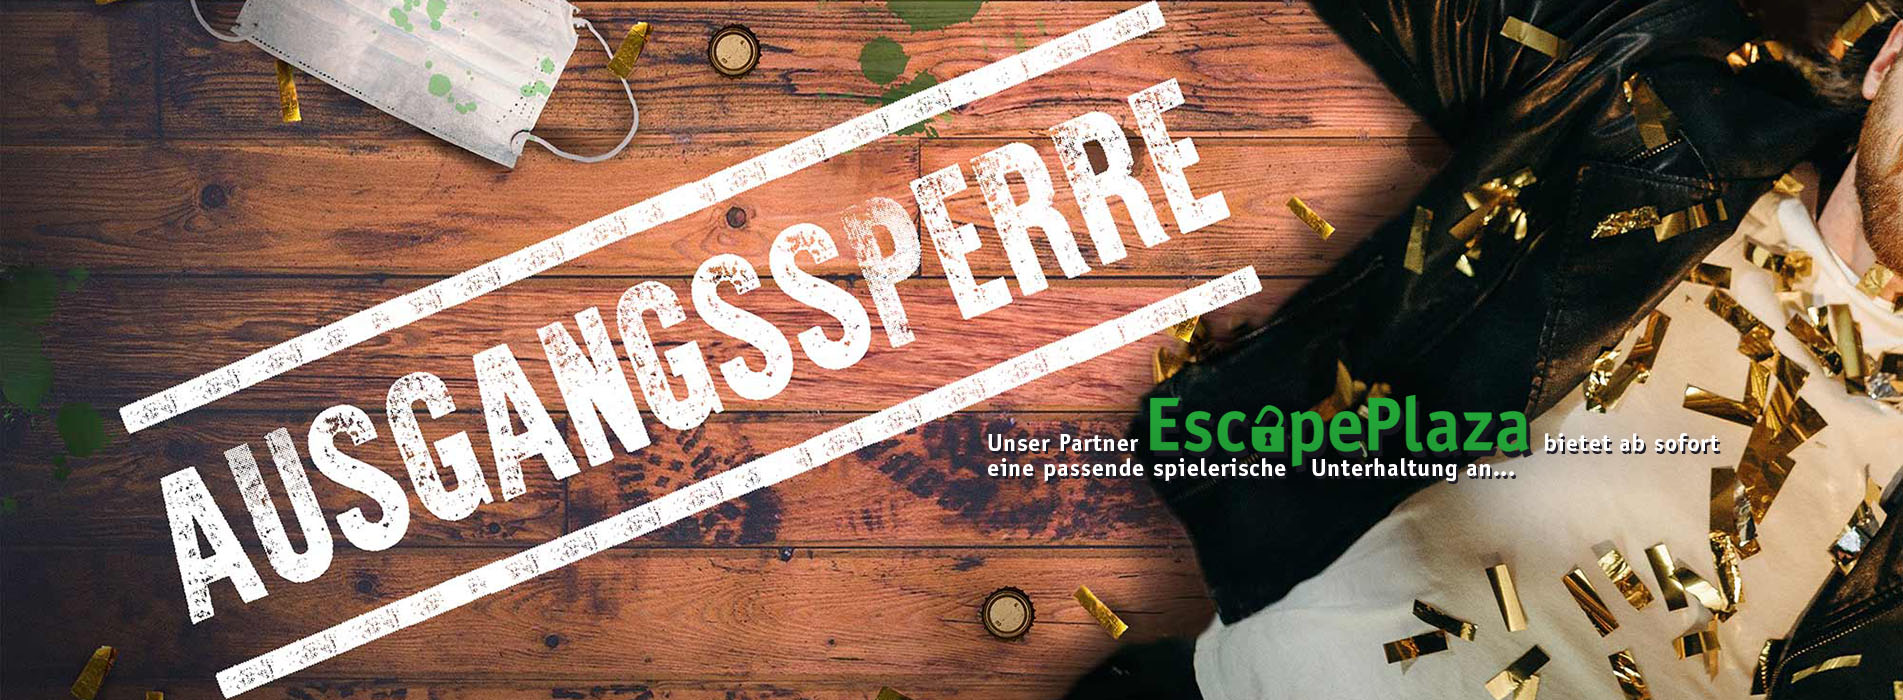 Ausgangssperre - Online Escape Room